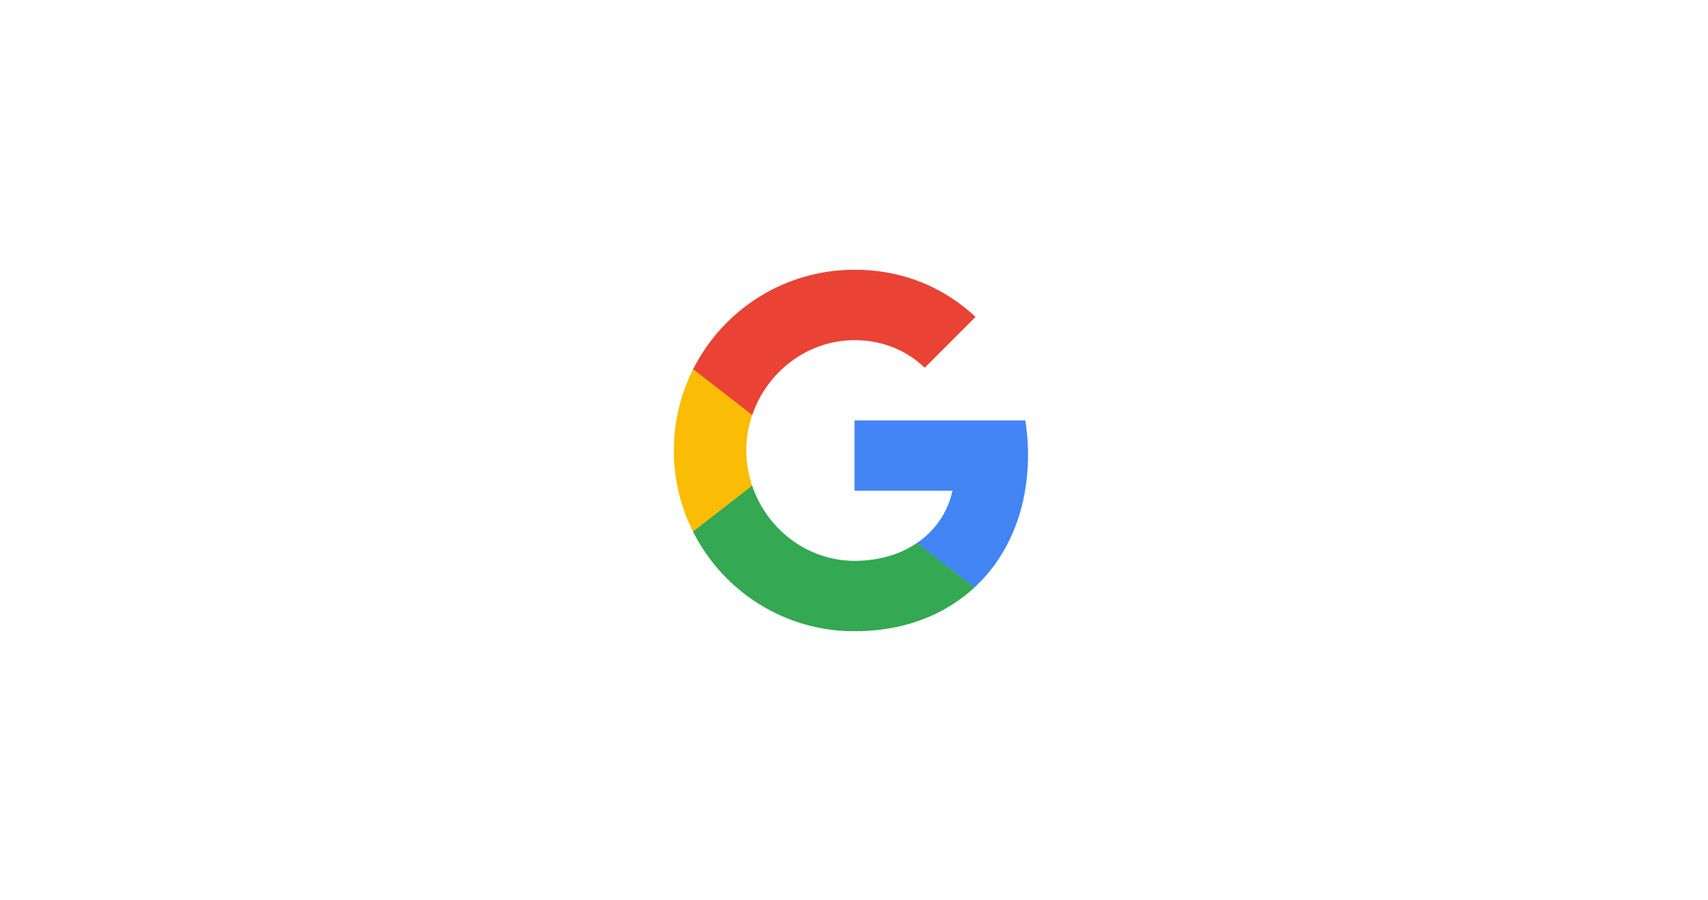 Google Logo - Evolving the Google Identity - Library - Google Design